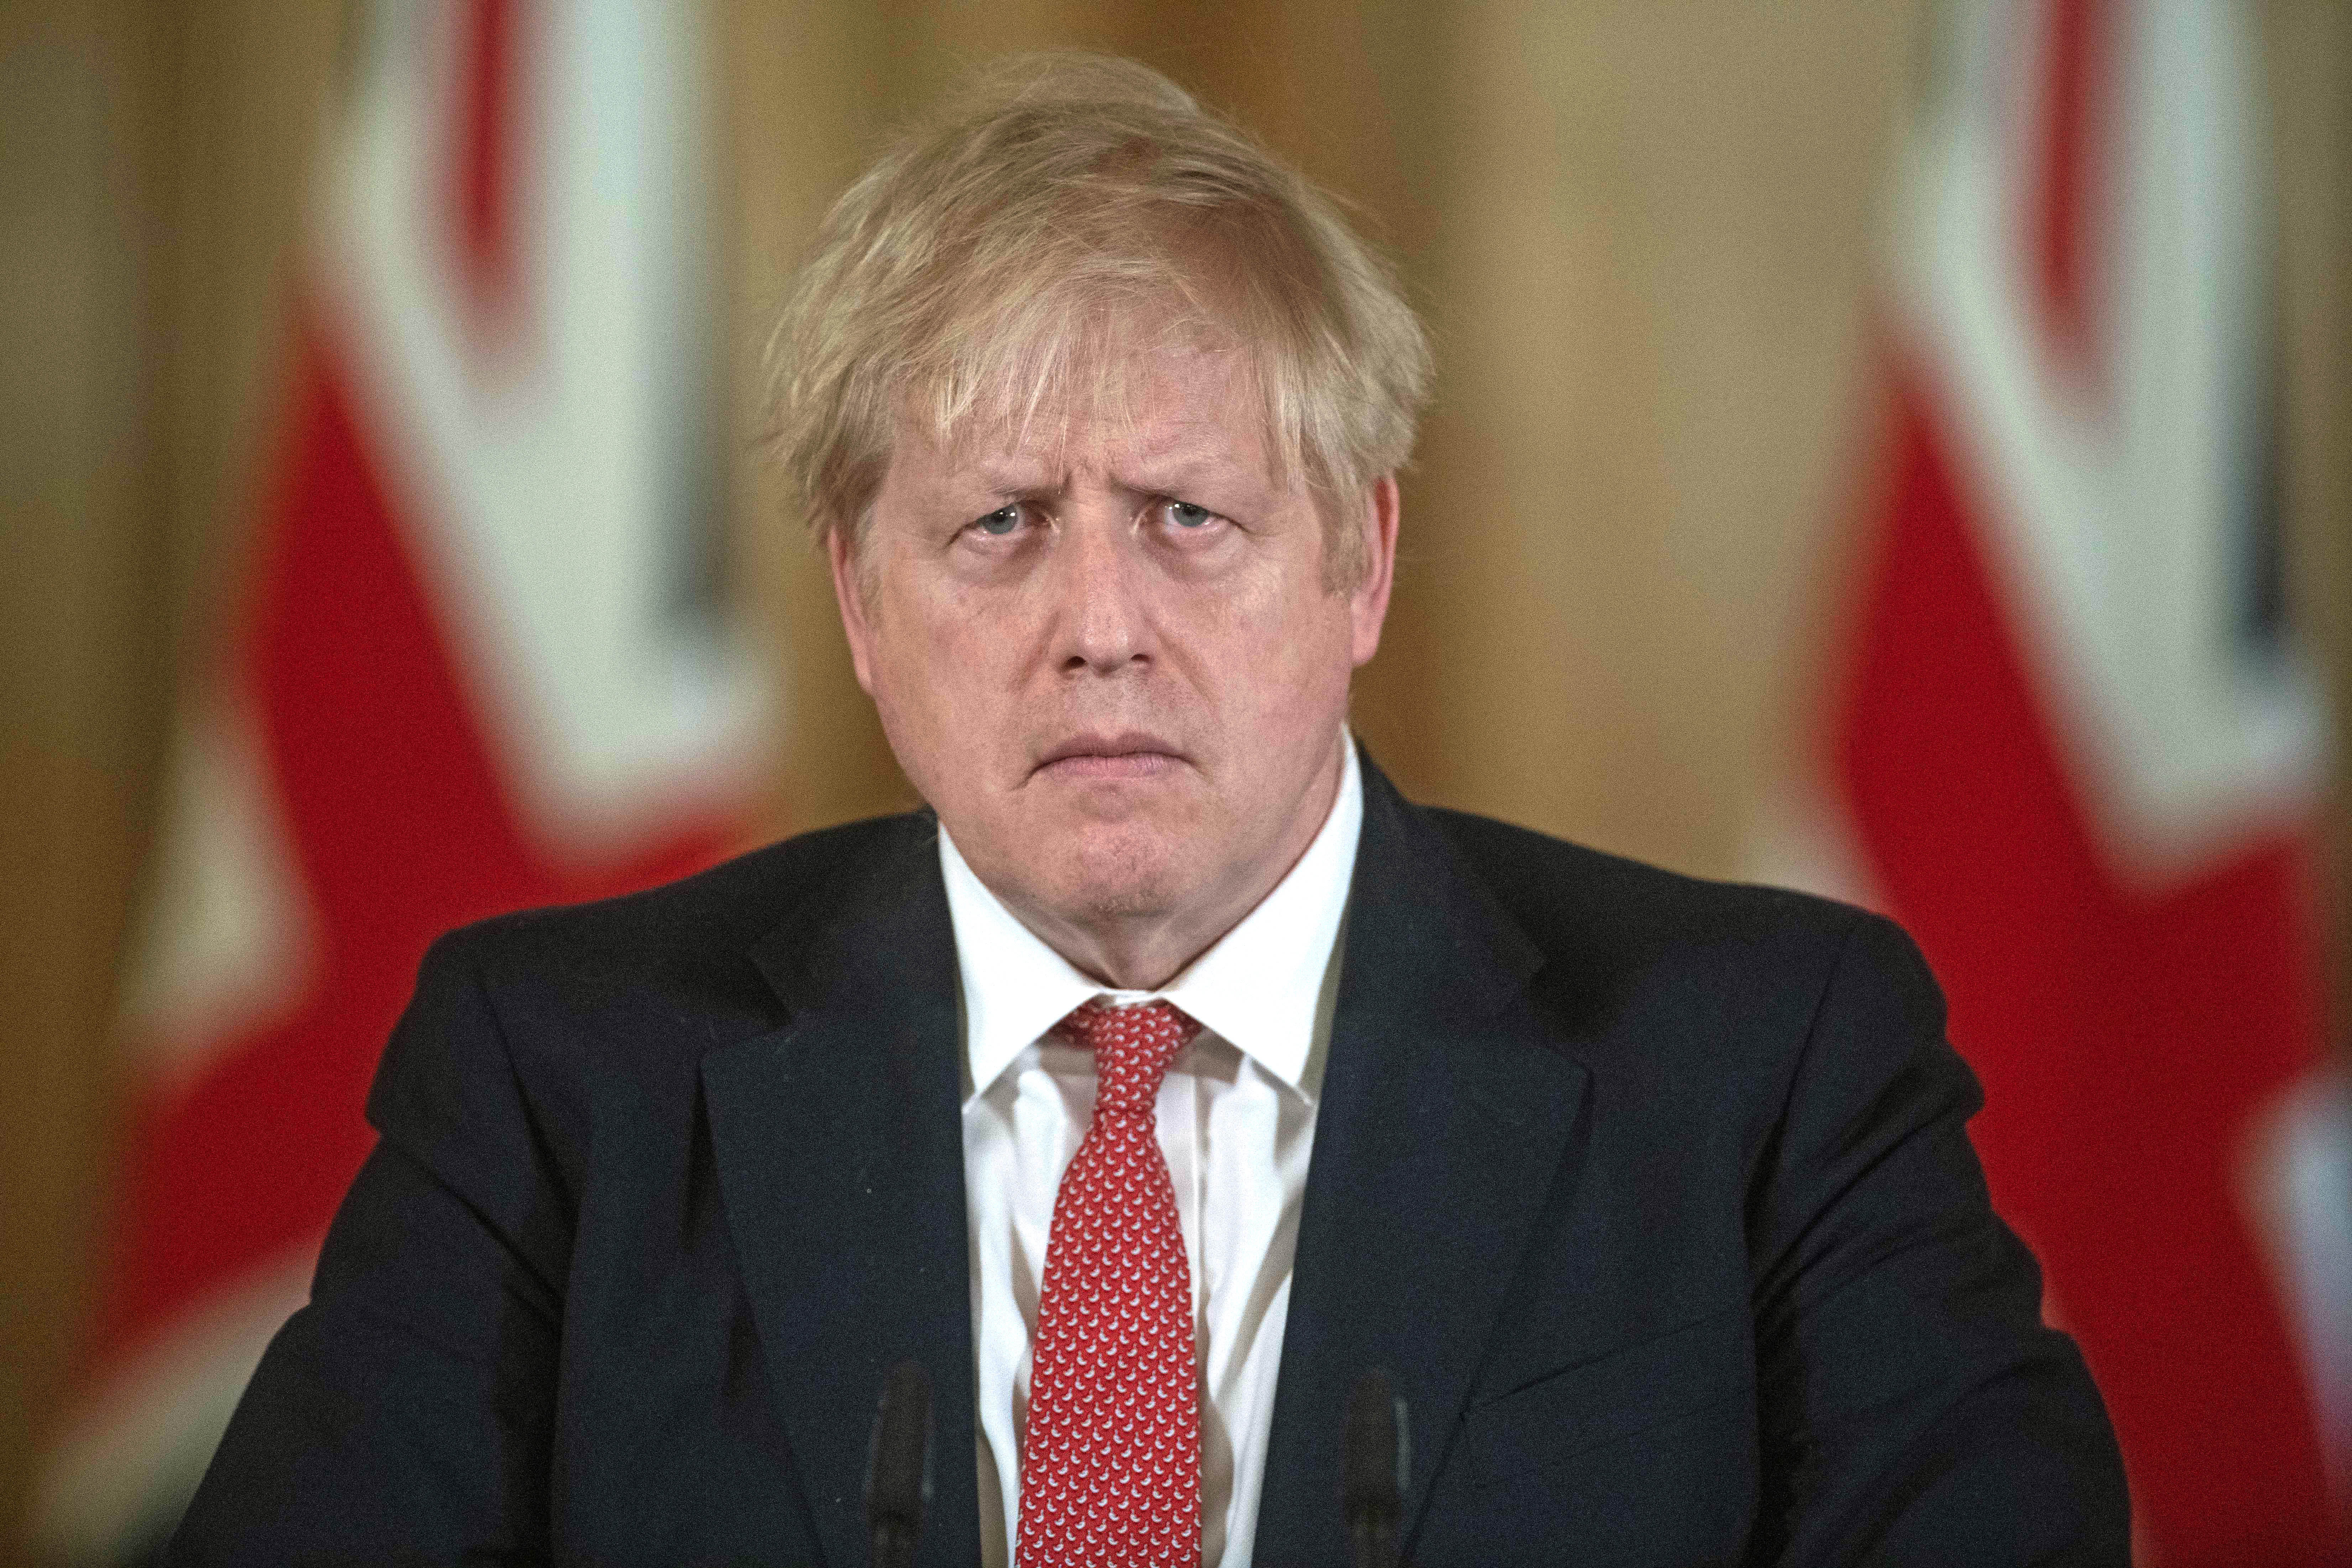 British Leader Boris Johnson in Intensive Care at London Hospital